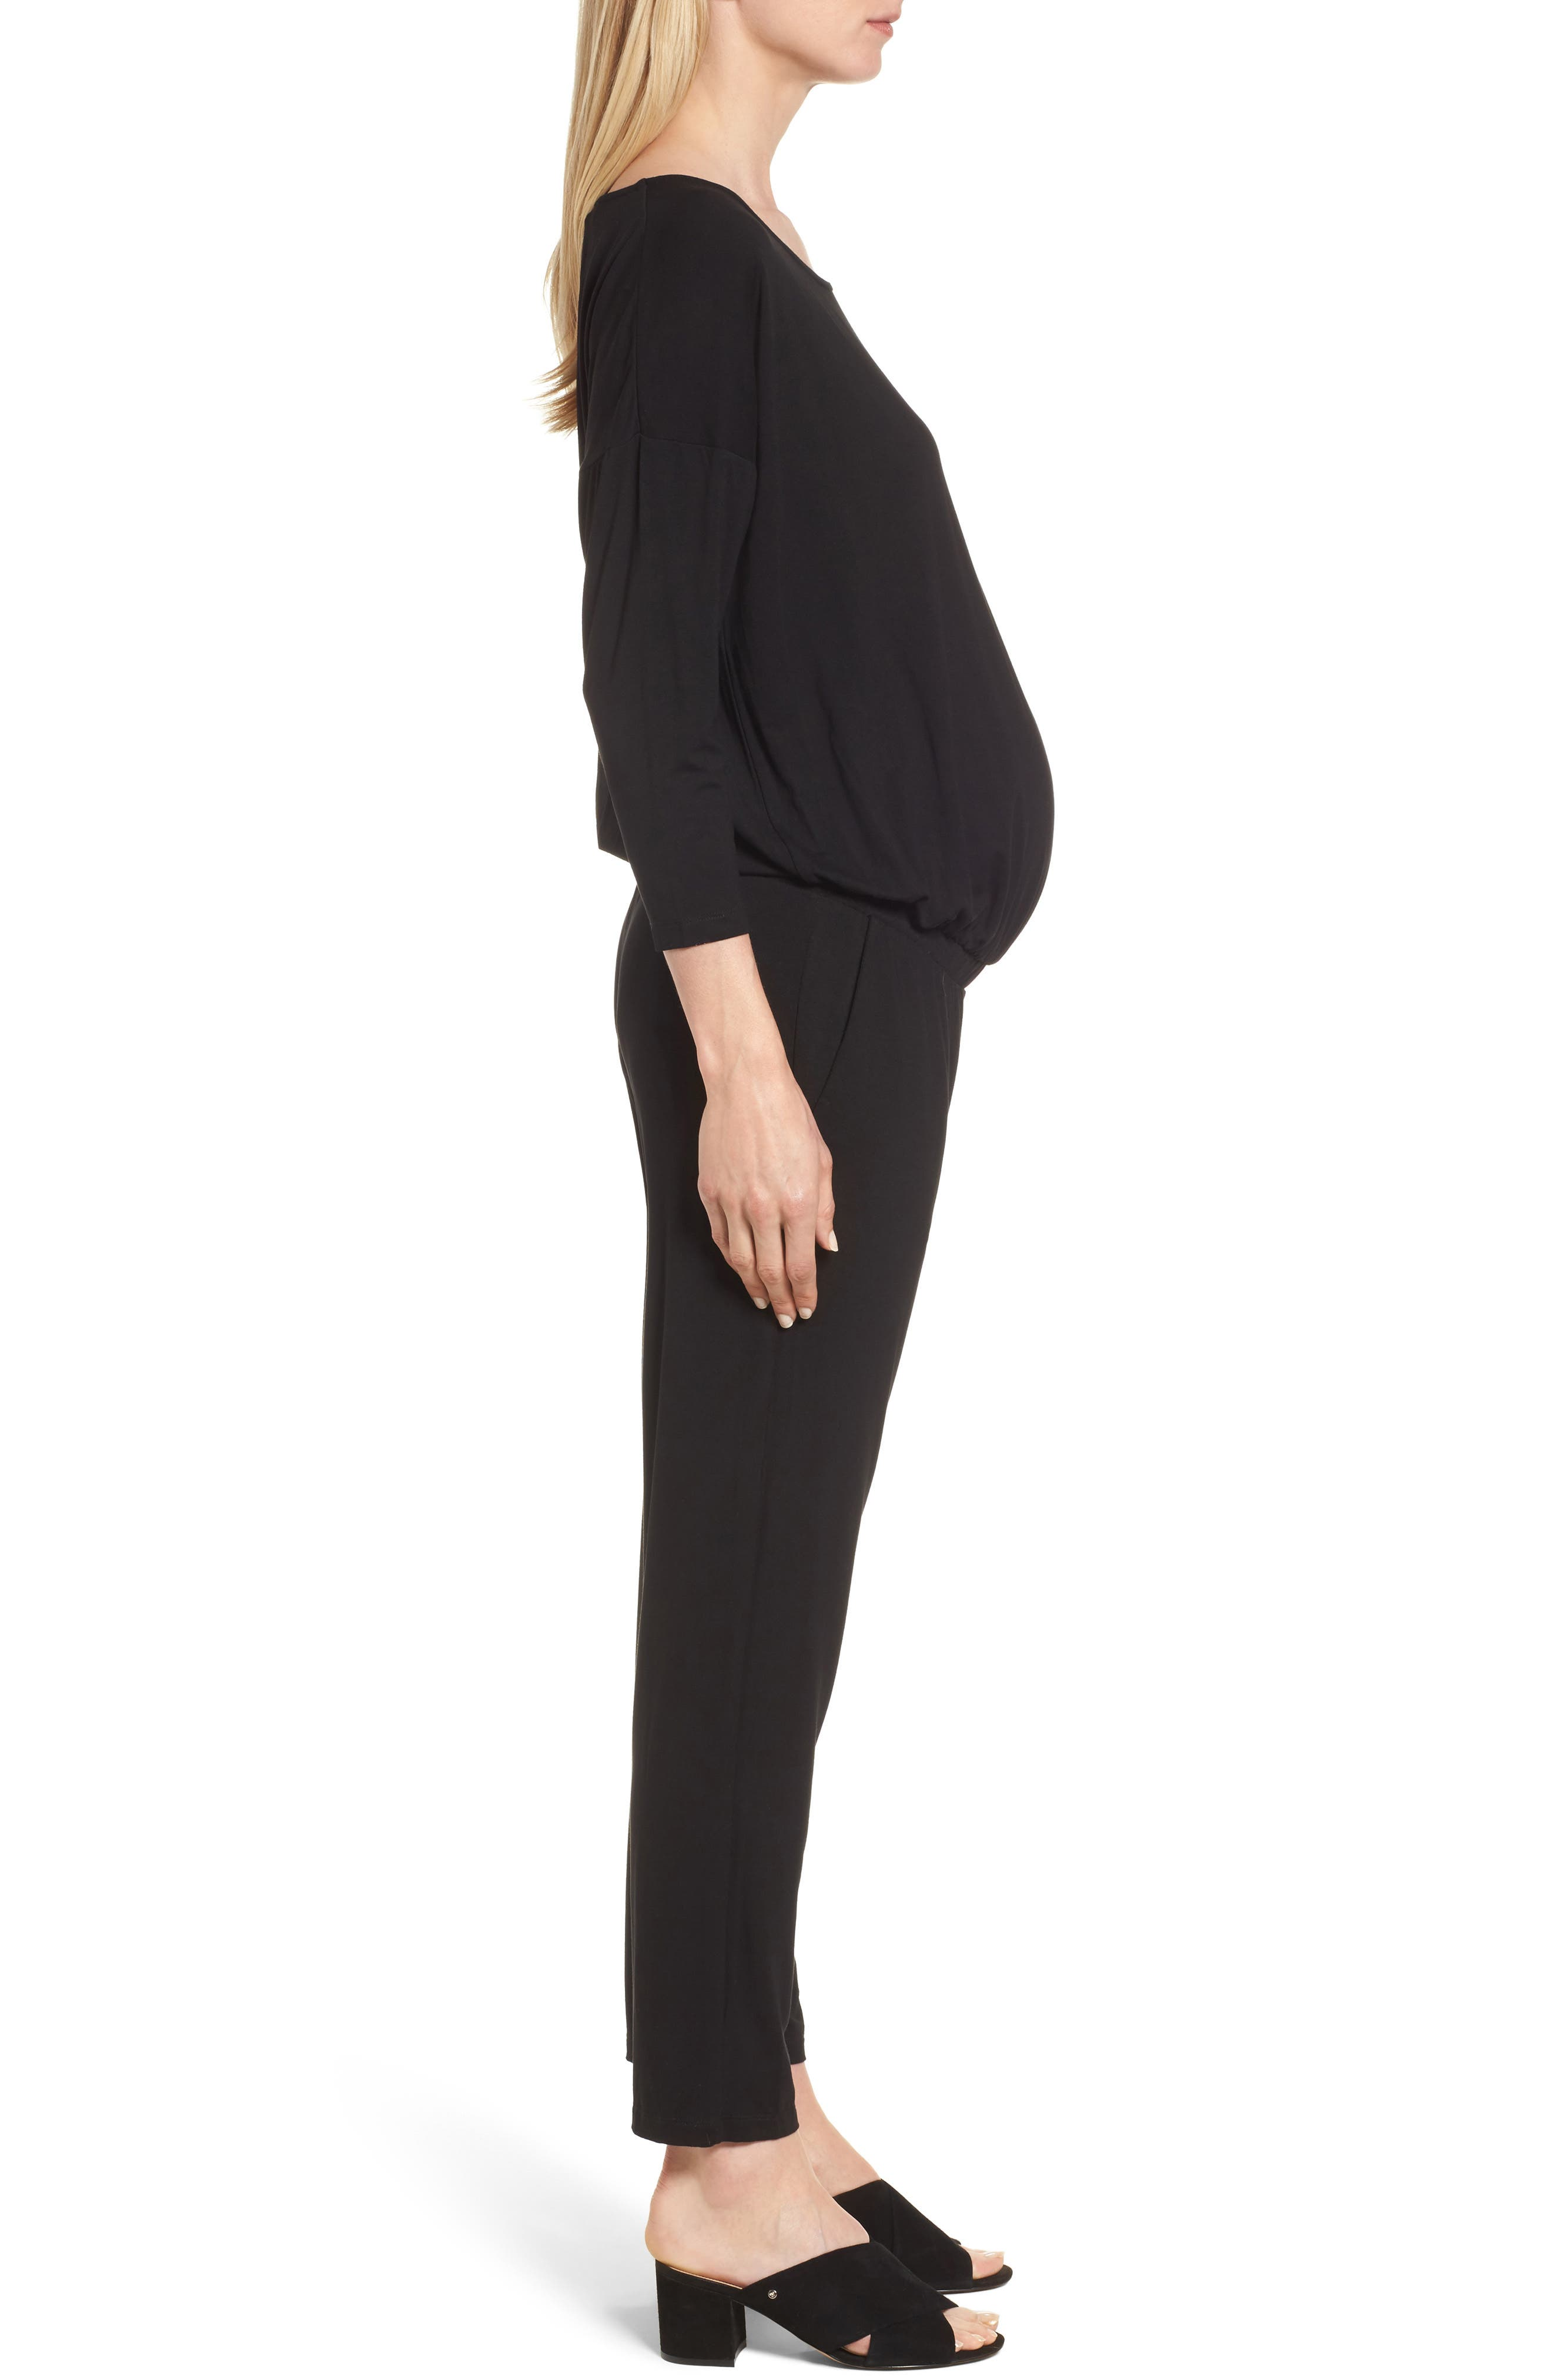 Chloe Maternity Jumpsuit,                             Alternate thumbnail 3, color,                             Caviar Black